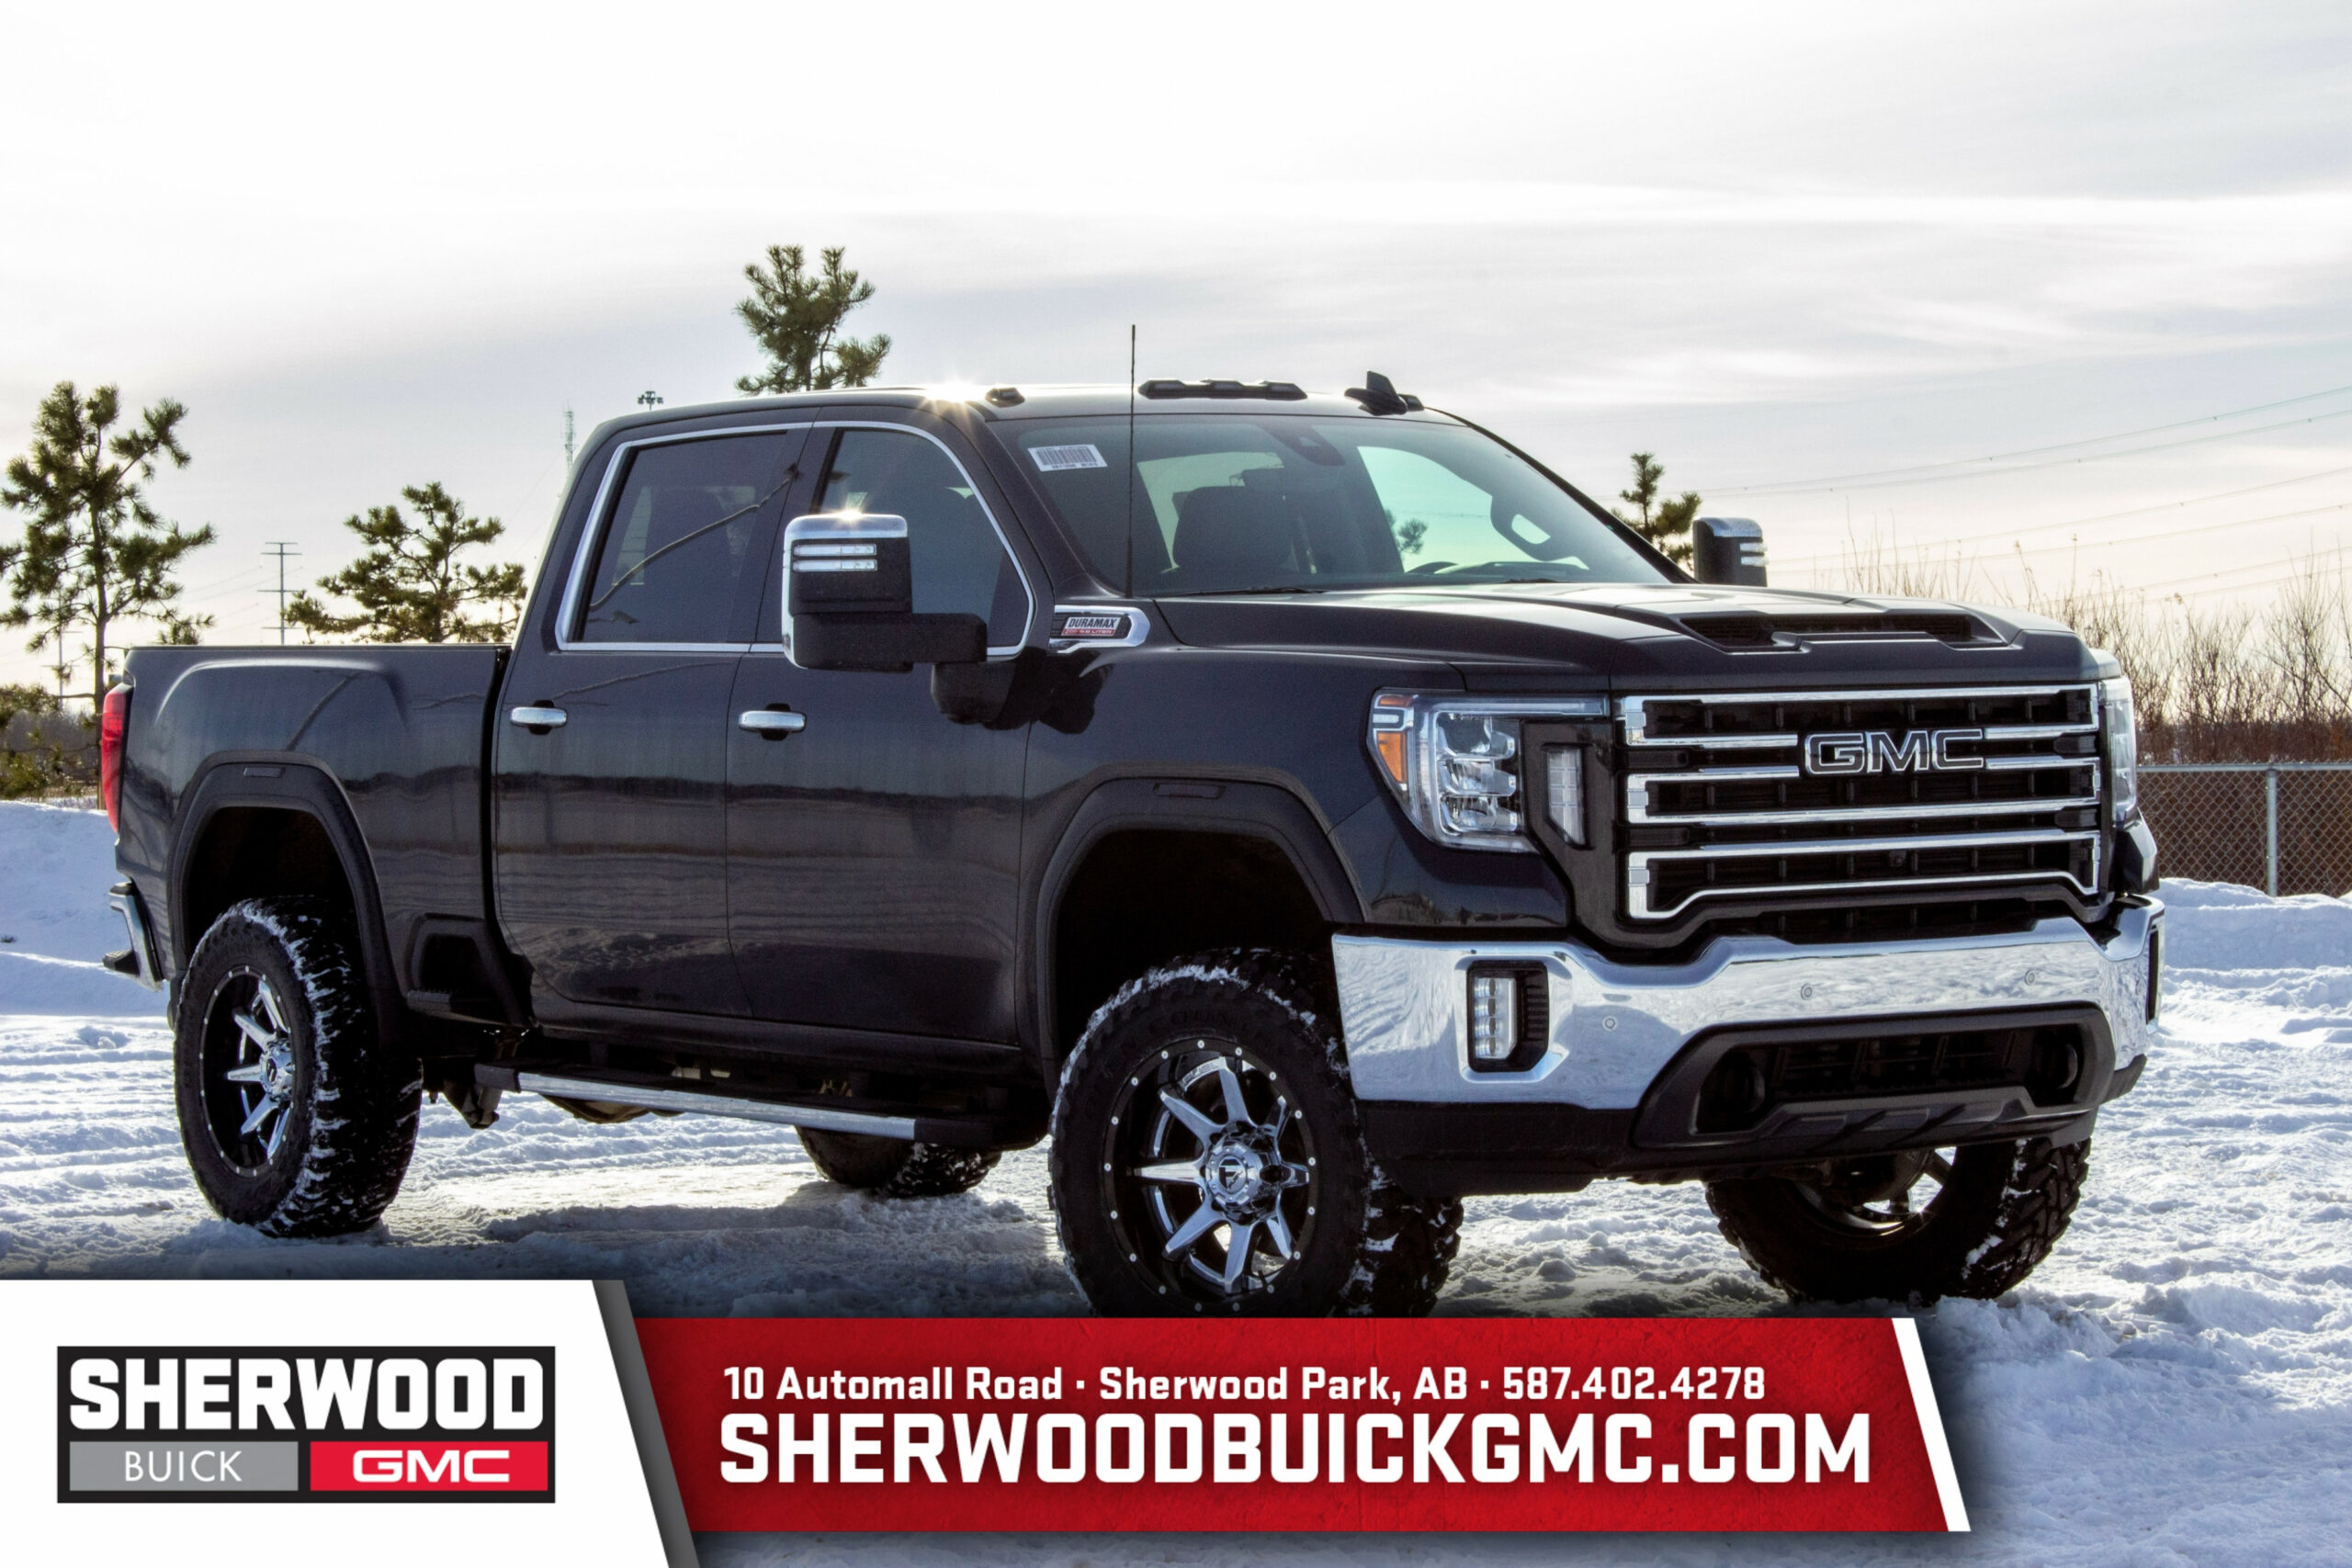 GMC SPECIAL EDITIONS & CUSTOM OFF-ROAD INVENTORY | Sherwood Buick GMC